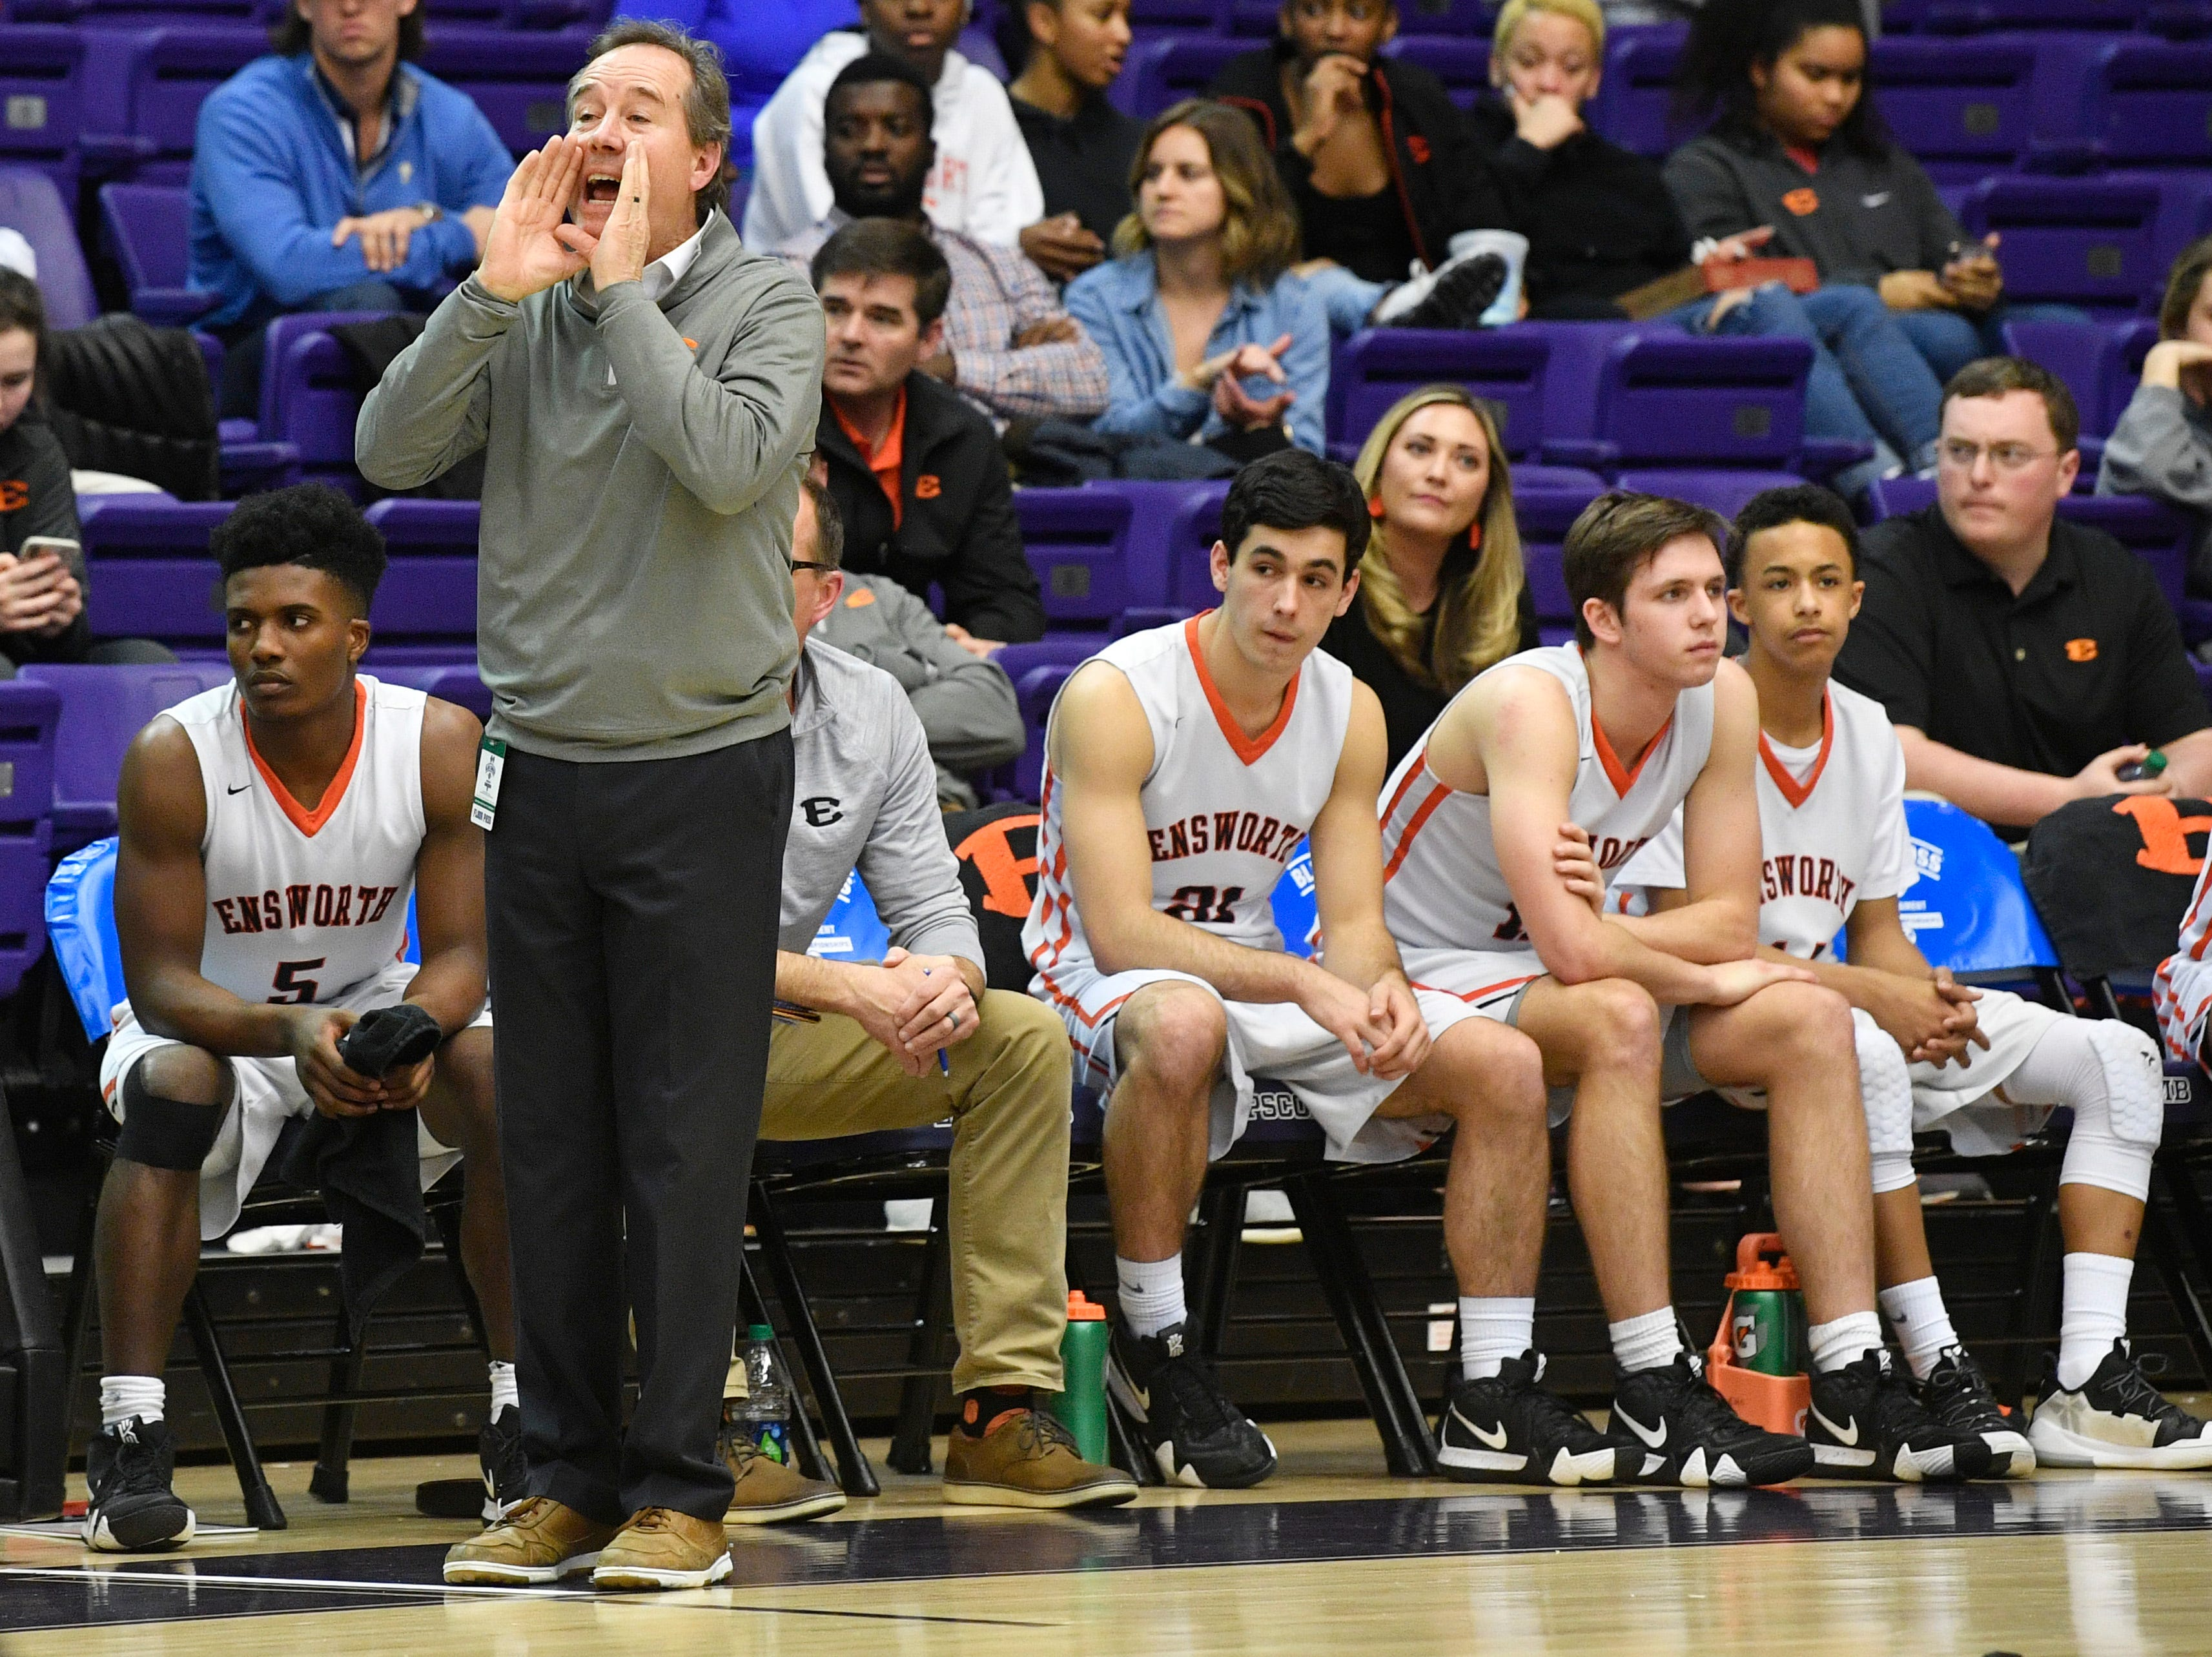 Ensworth Coach Ricky Bowers shouts instructions to his team as Ensworth plays Briarcrest Christian in the Division II- AA semifinals at Allen Arena  Thursday, Feb. 28, 2019, in Nashville, Tenn.